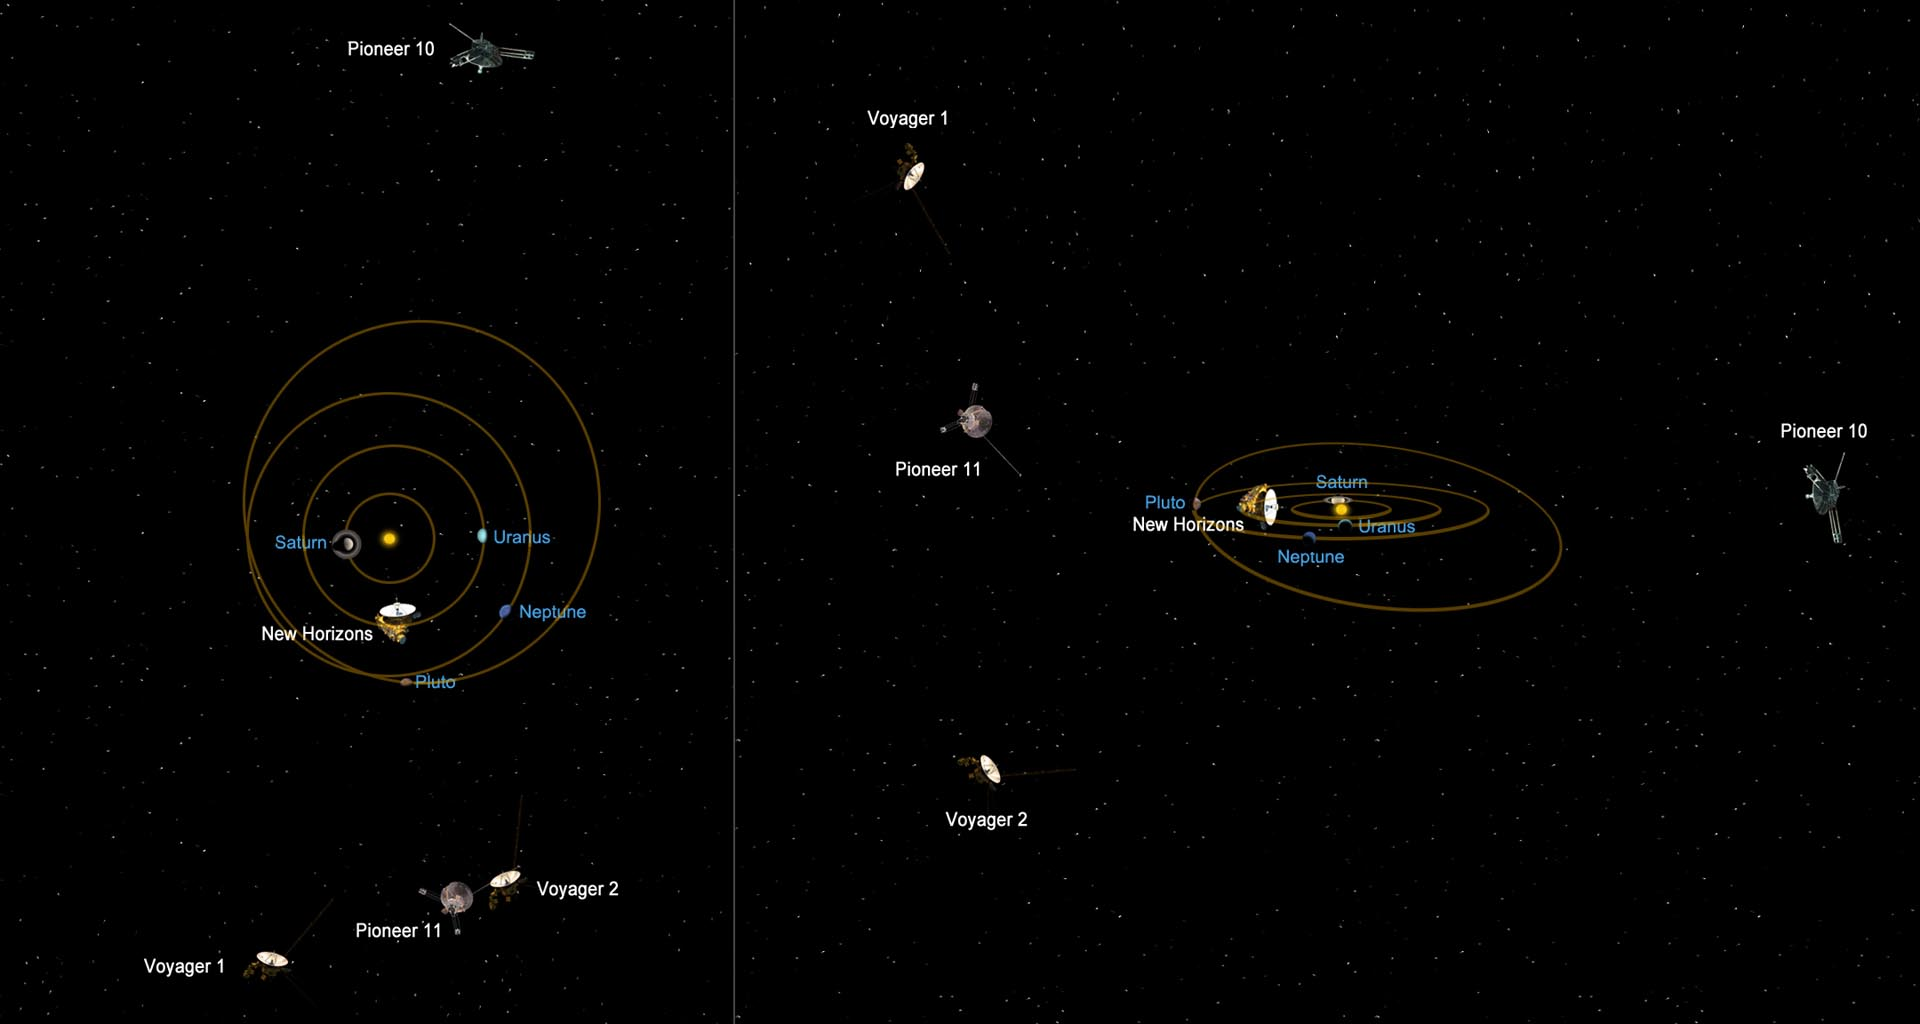 This graphic shows the relative positions of NASA's most distant spacecraft in early 2011, looking at the solar system from the side. Voyager 1 is the most distant spacecraft, 10.9 billion miles away from the sun at a northward angle.